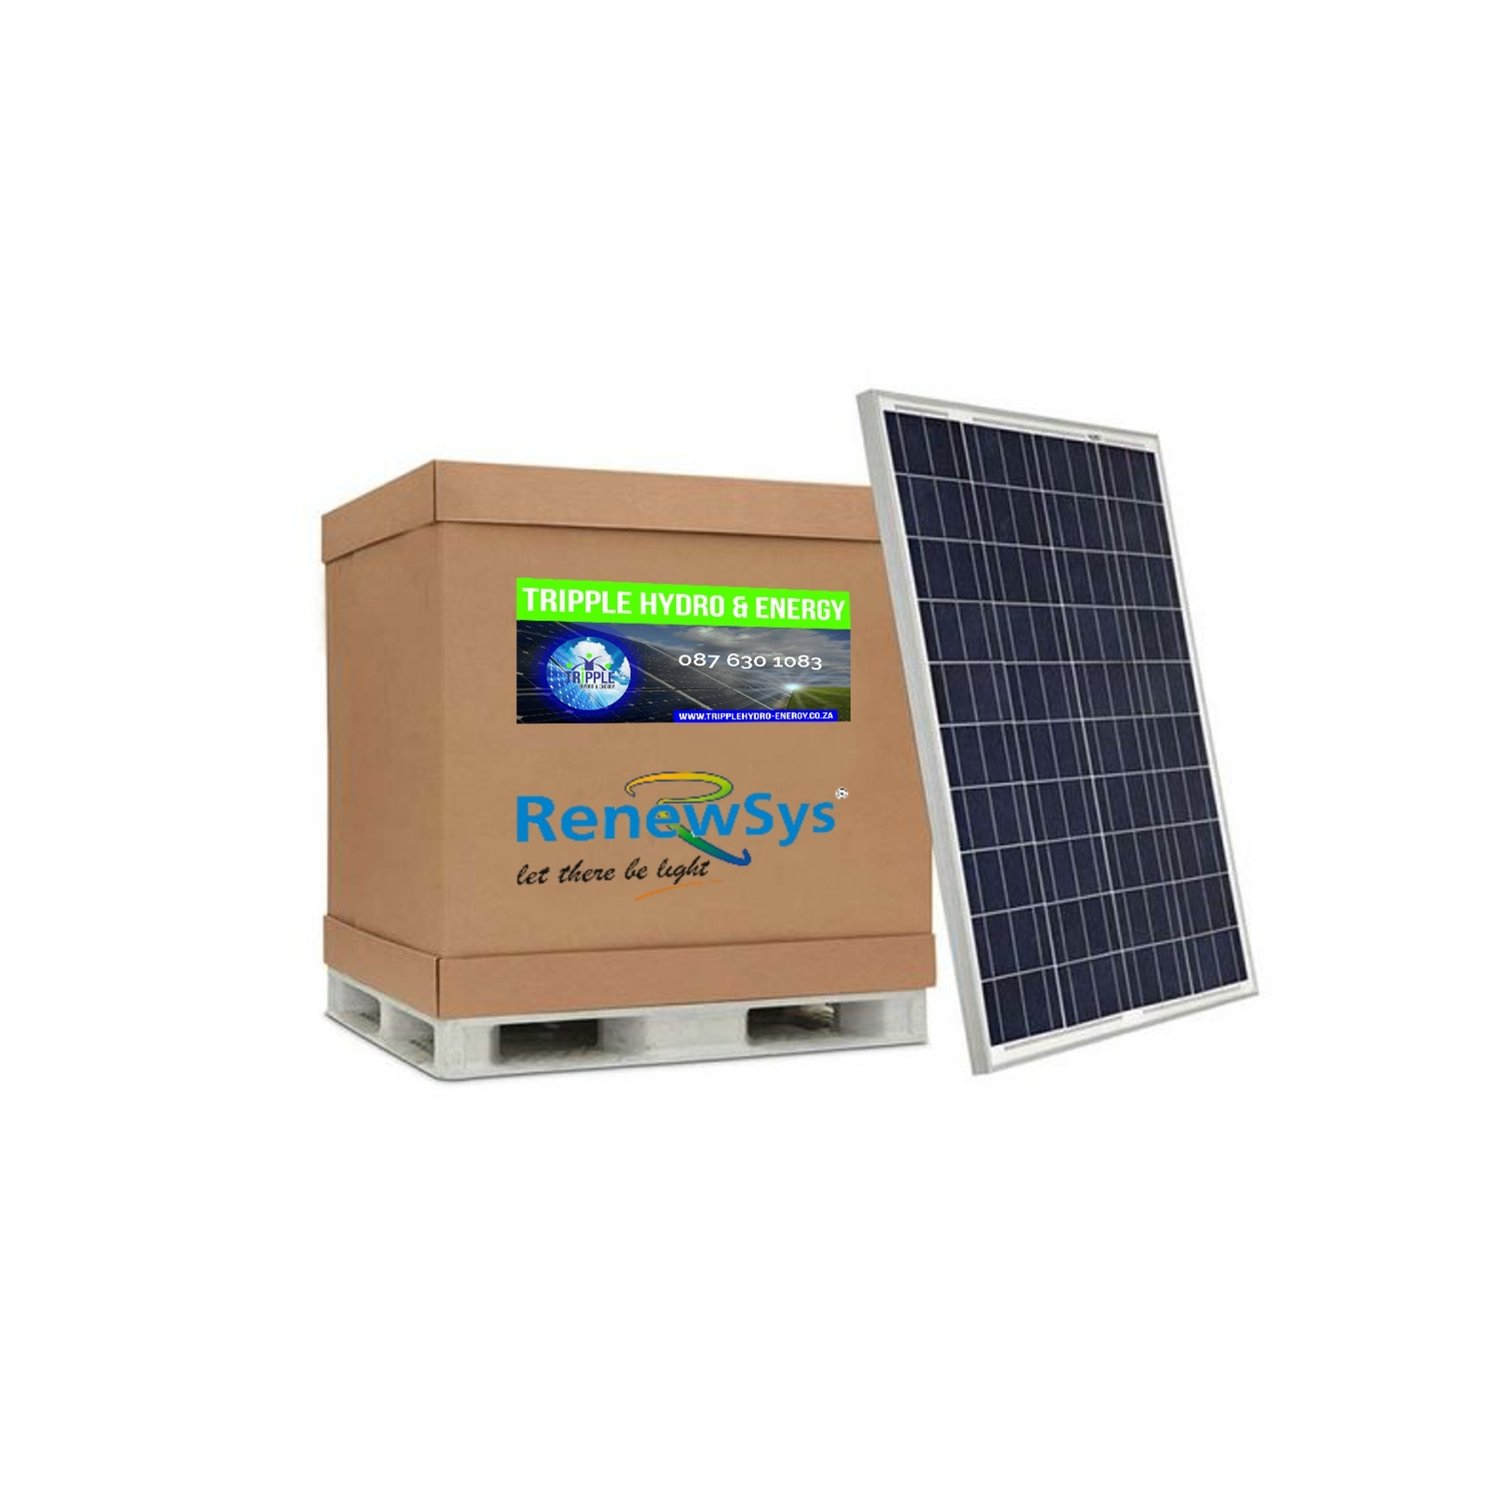 Renewsys 320 Watt Solar Panel Pallet of 26